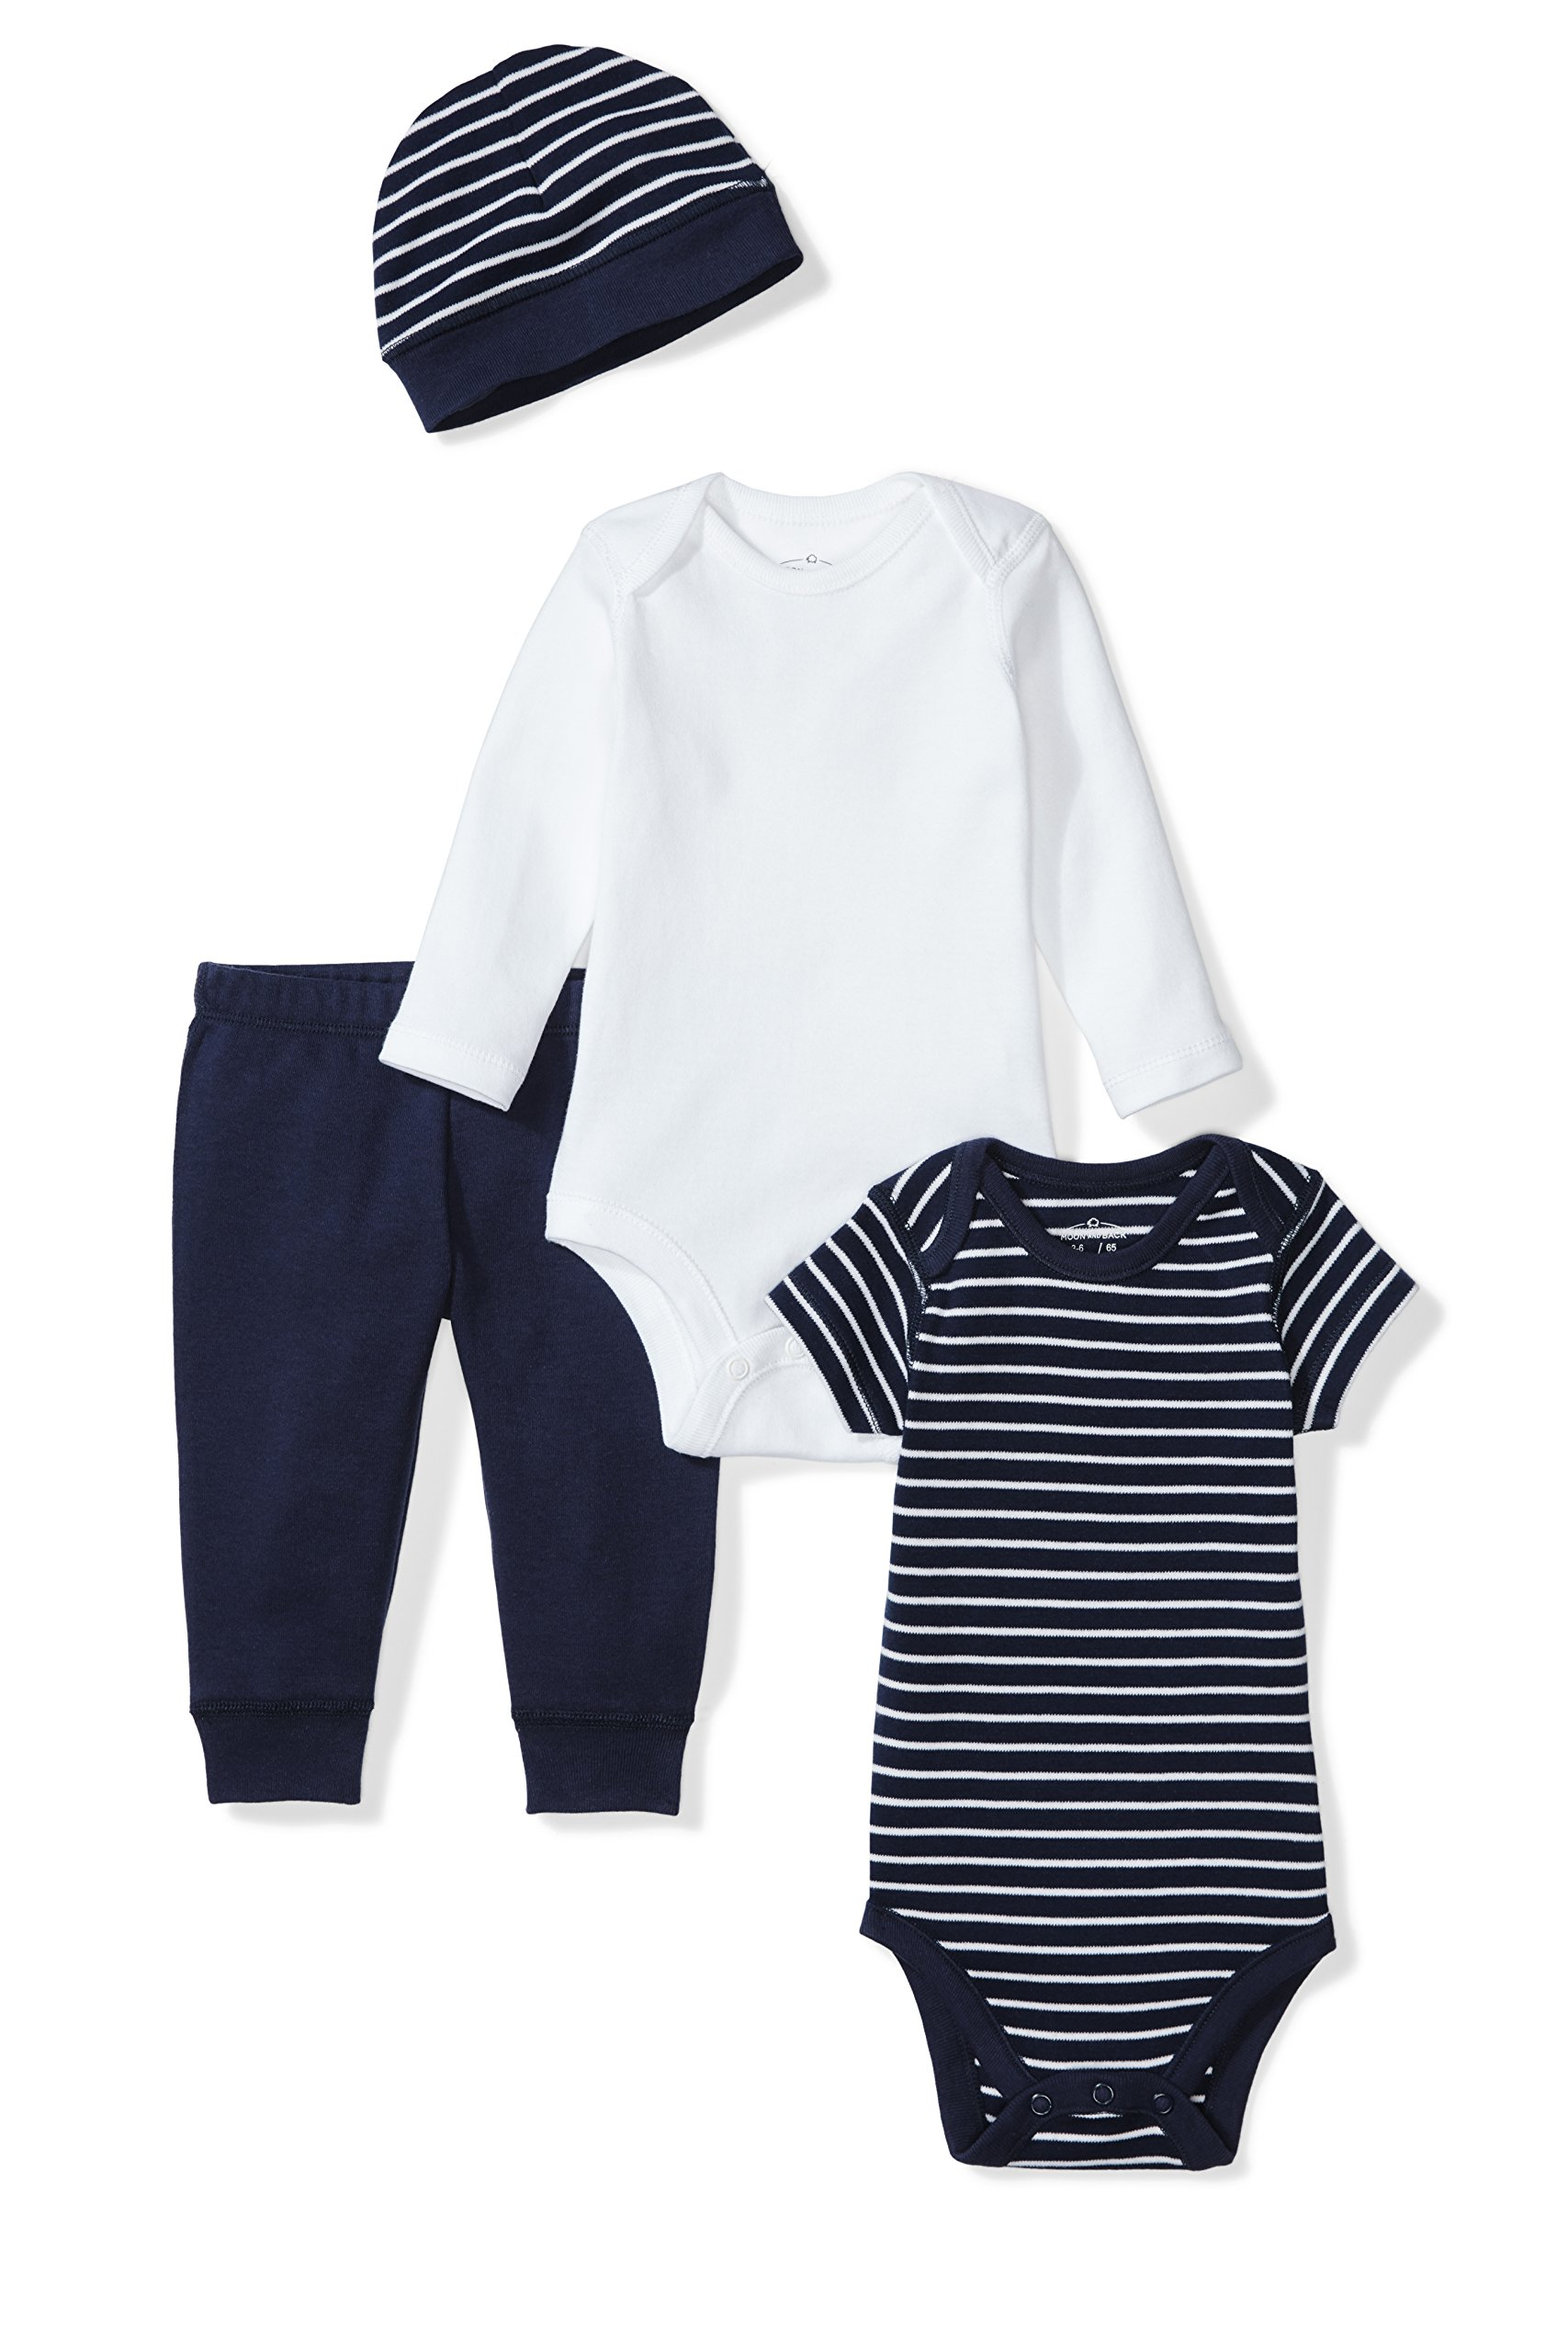 Moon and Back Baby 4 Piece Organic Playtime Gift Set, Navy Sea, 0-3 Months by Moon and Back